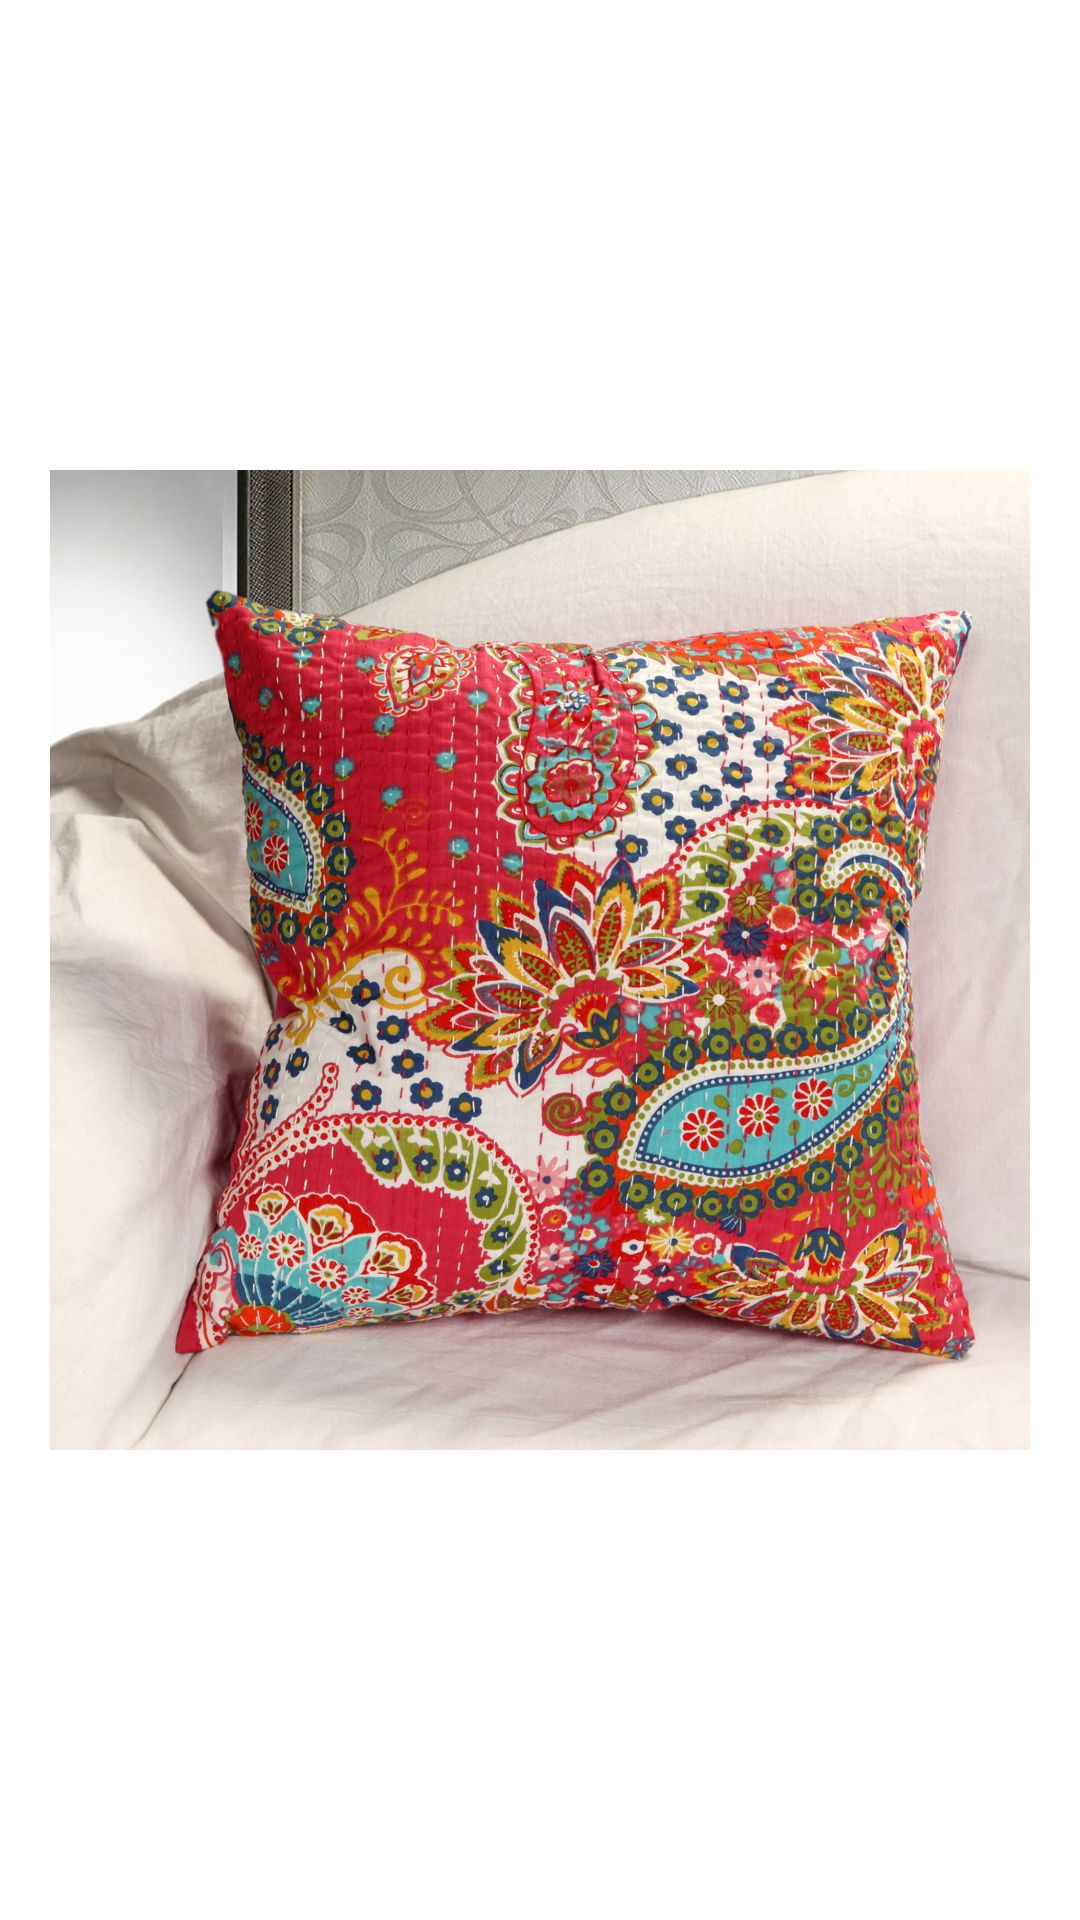 Rugsville Set of 5 Cotton Cushion Covers 40X40 cm (16X16)